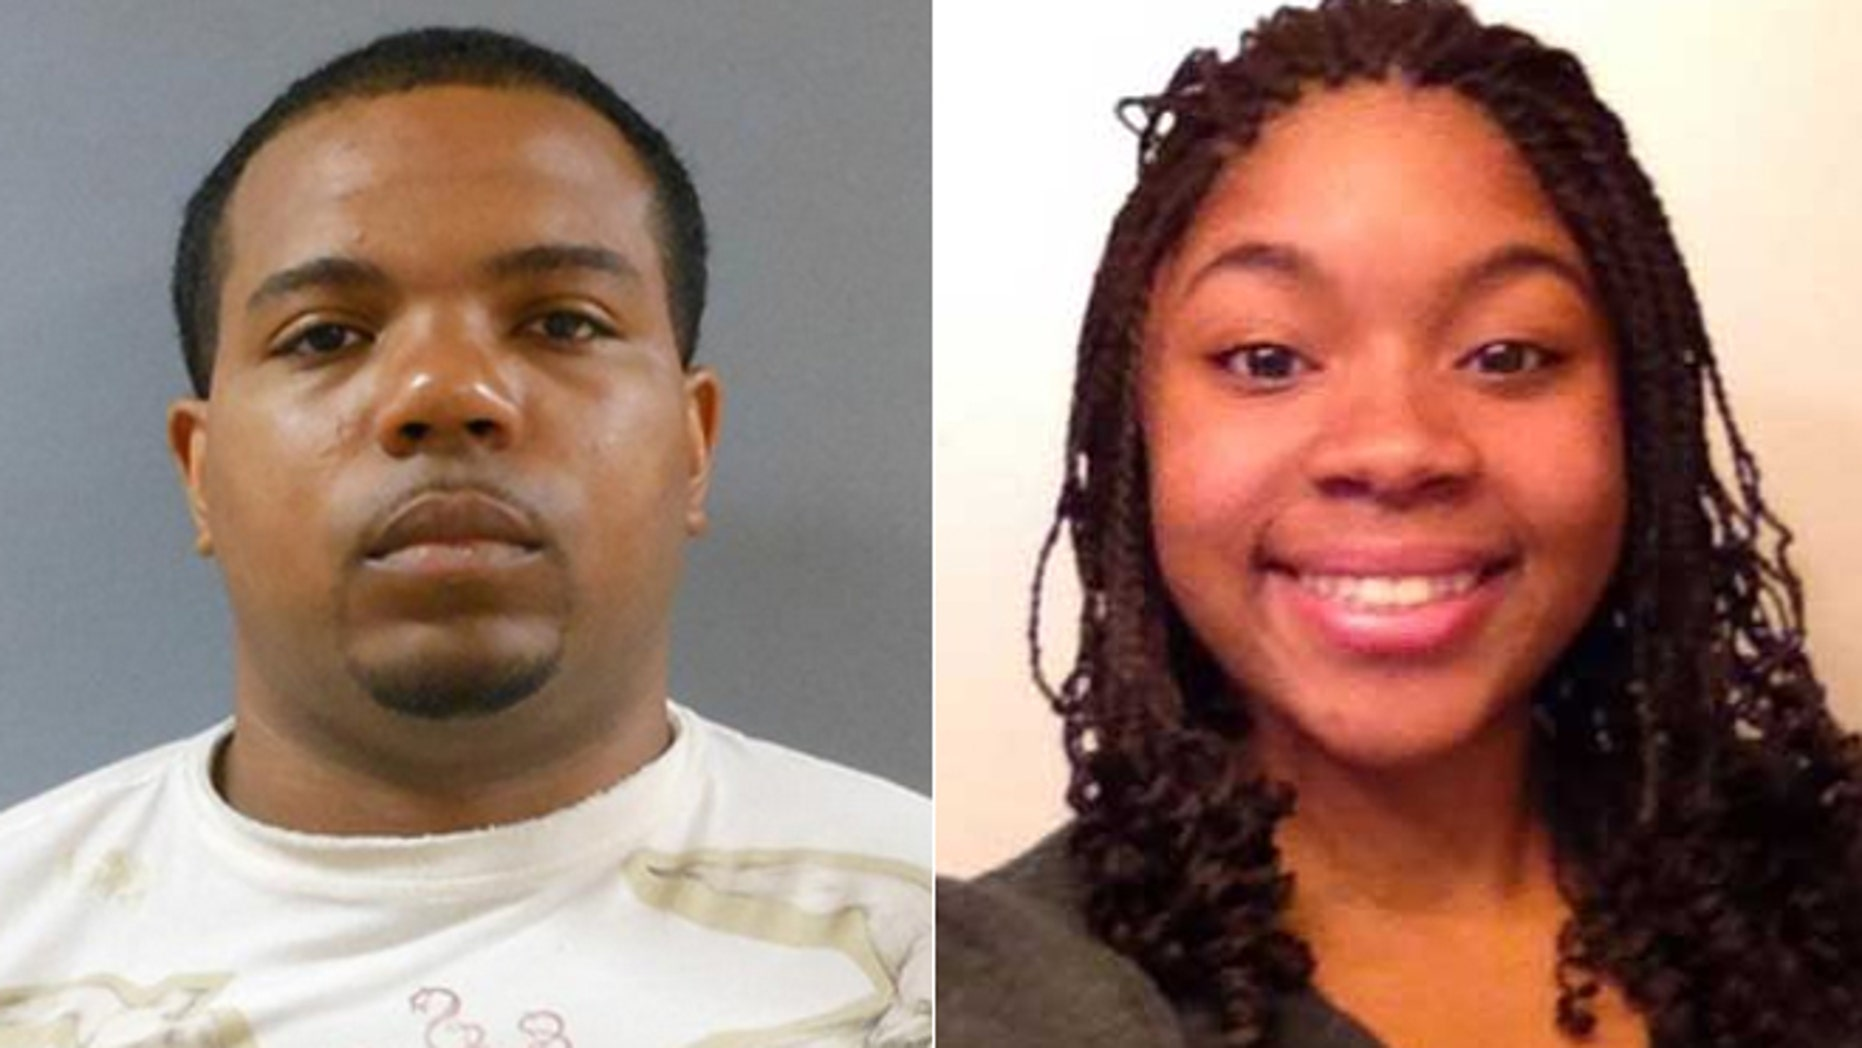 Franklin Davis already was charged with four counts of sexual assault when he took Carrollton high school sophomore Shania Gray from her school.